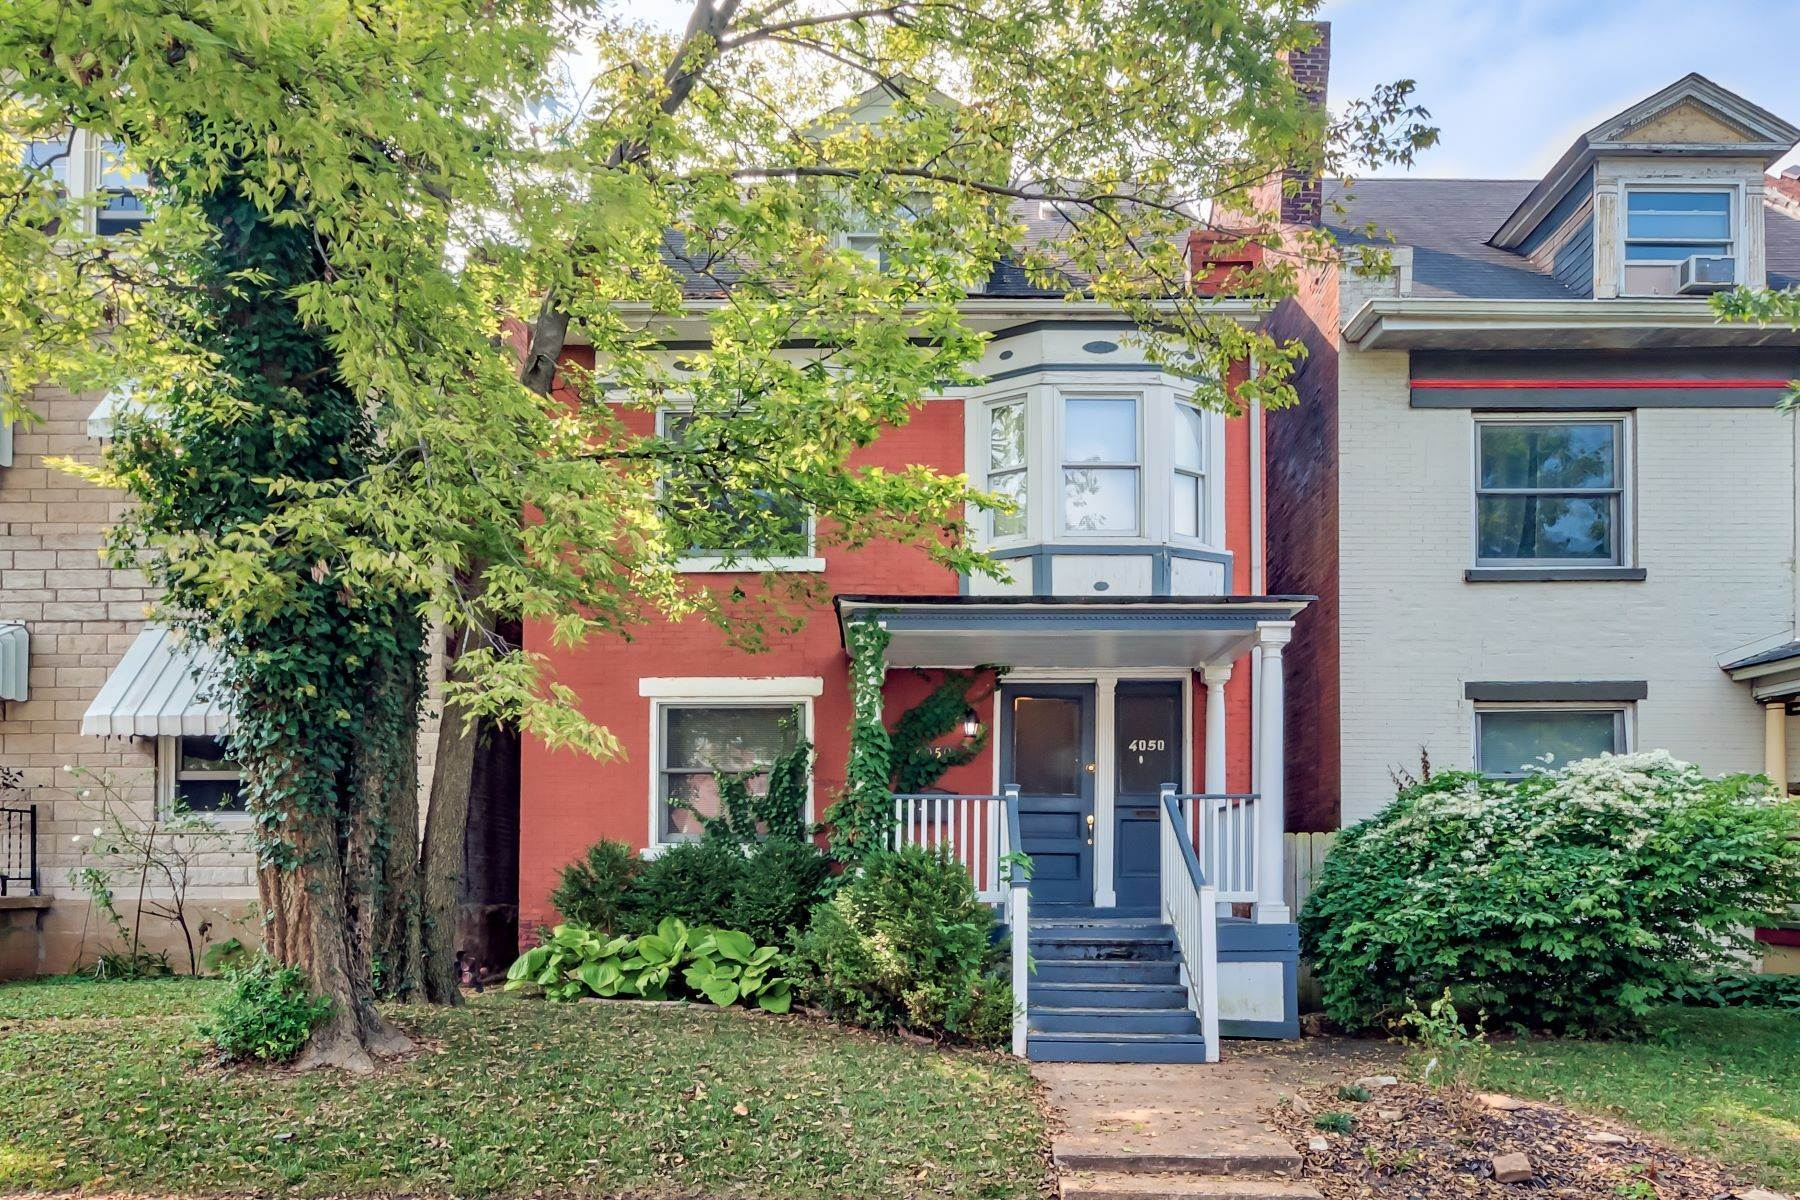 Single Family Homes for Sale at Fantastic Opportunity in Historic Shaw Neighborhood 4050 Russell Boulevard St. Louis, Missouri 63110 United States